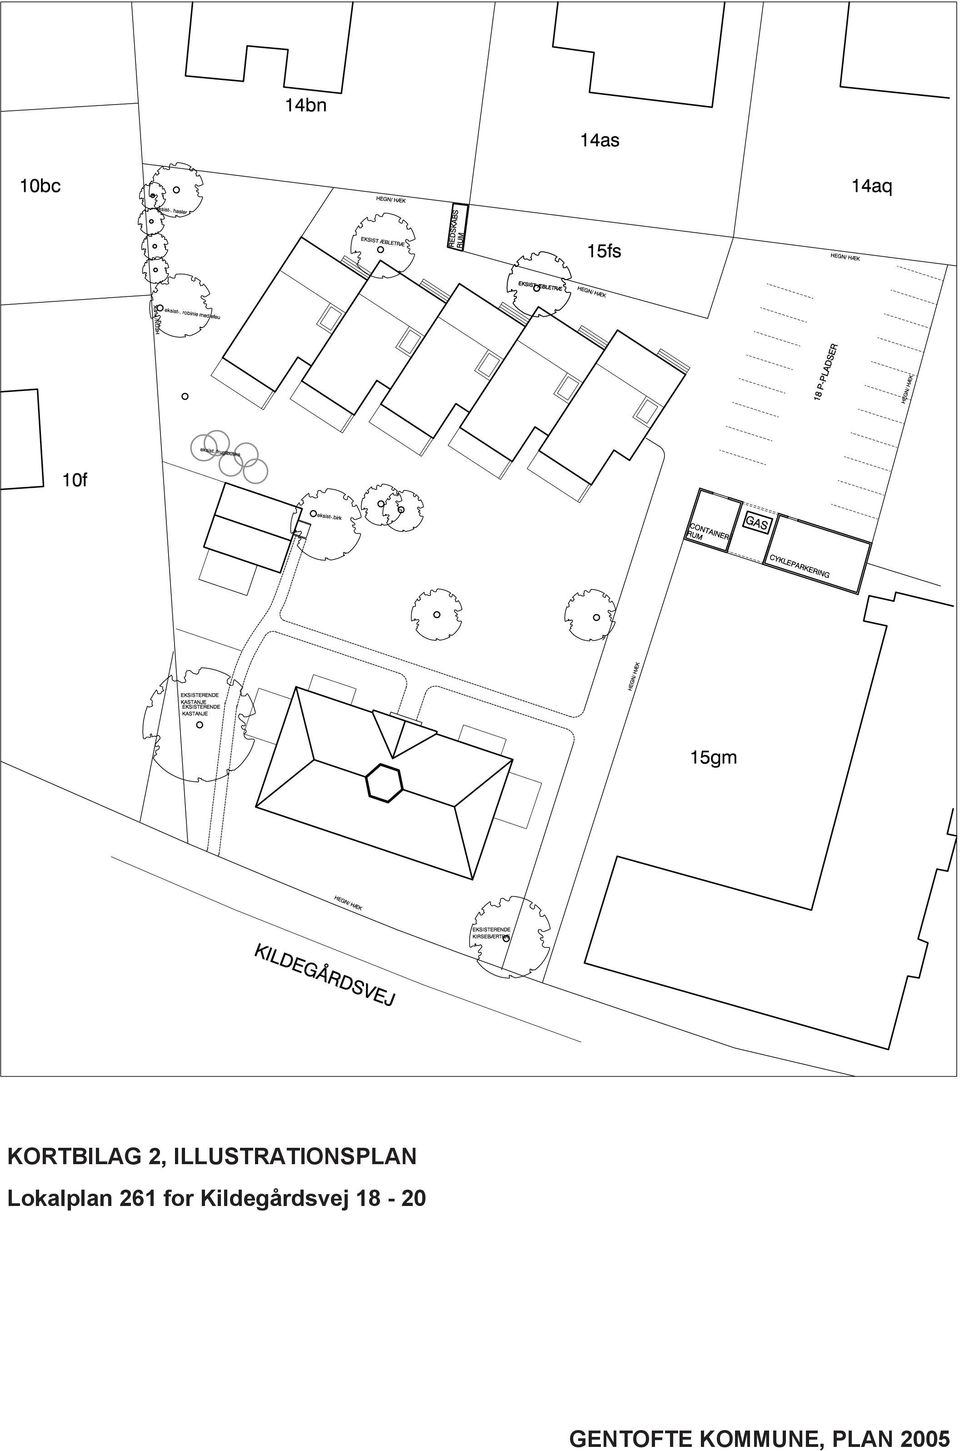 Lokalplan 261 for